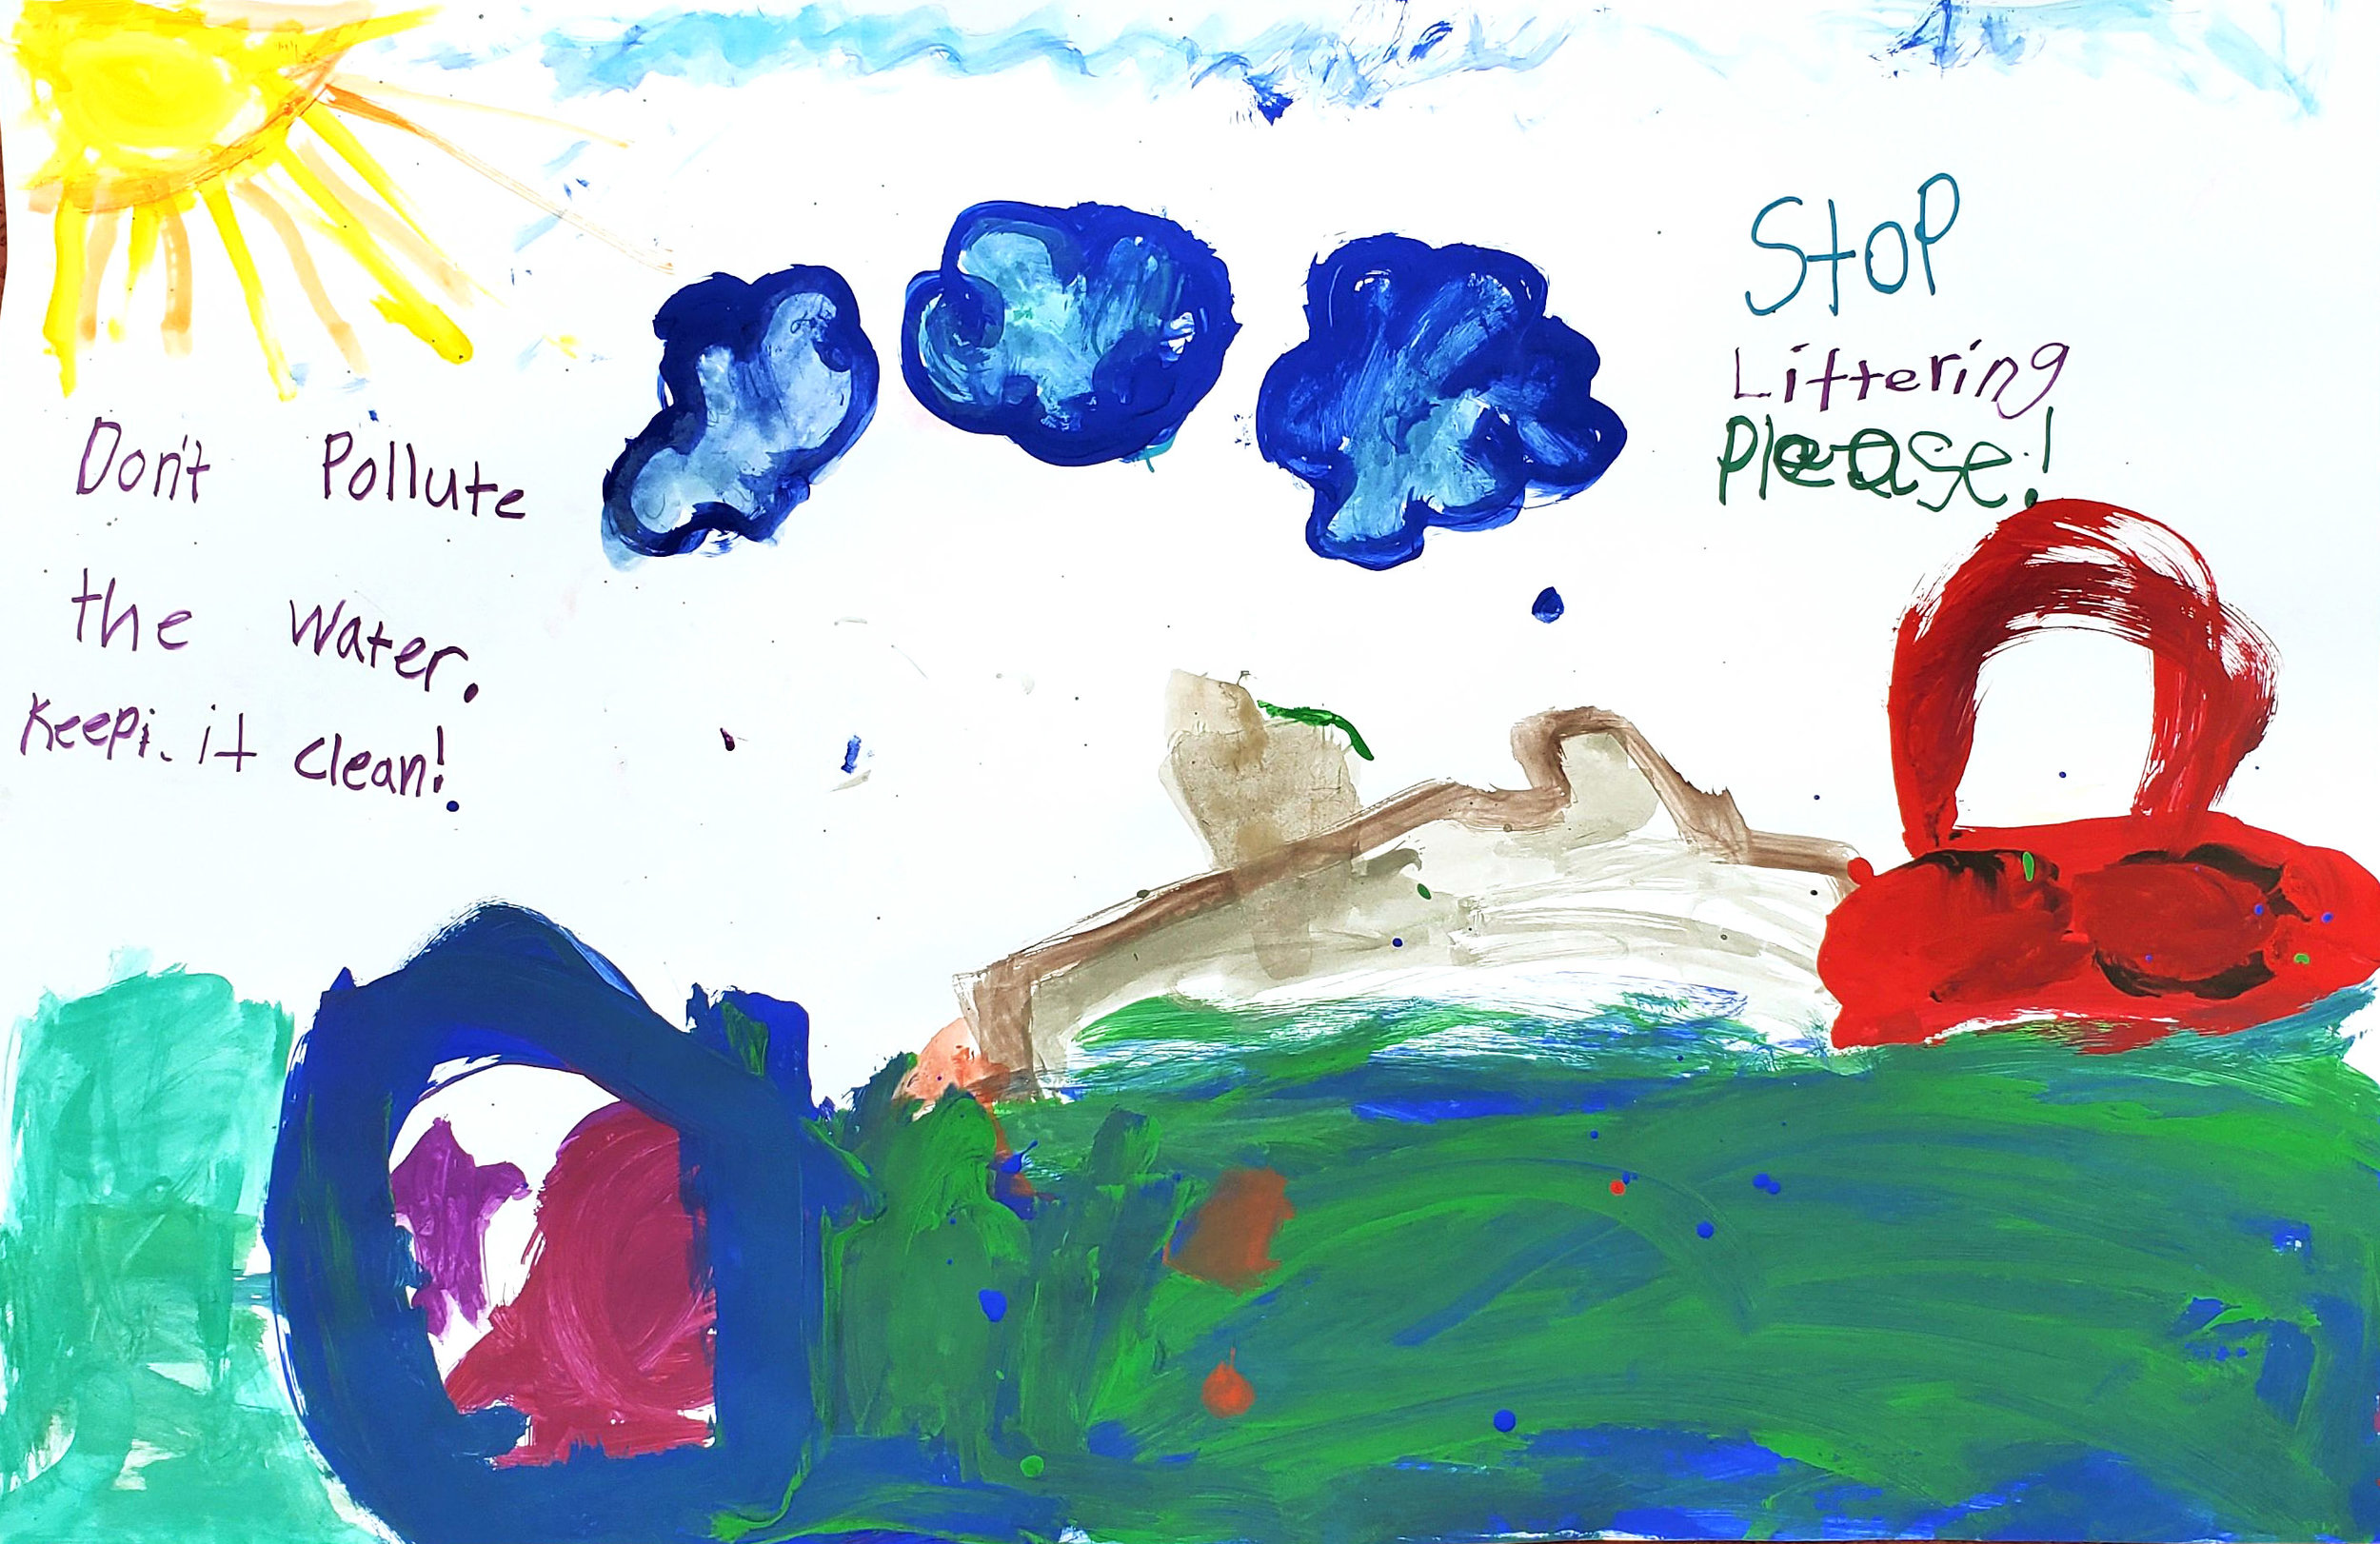 1st Grade Oyster Poster(2c) - s10 phone.JPG rtch crop.jpg